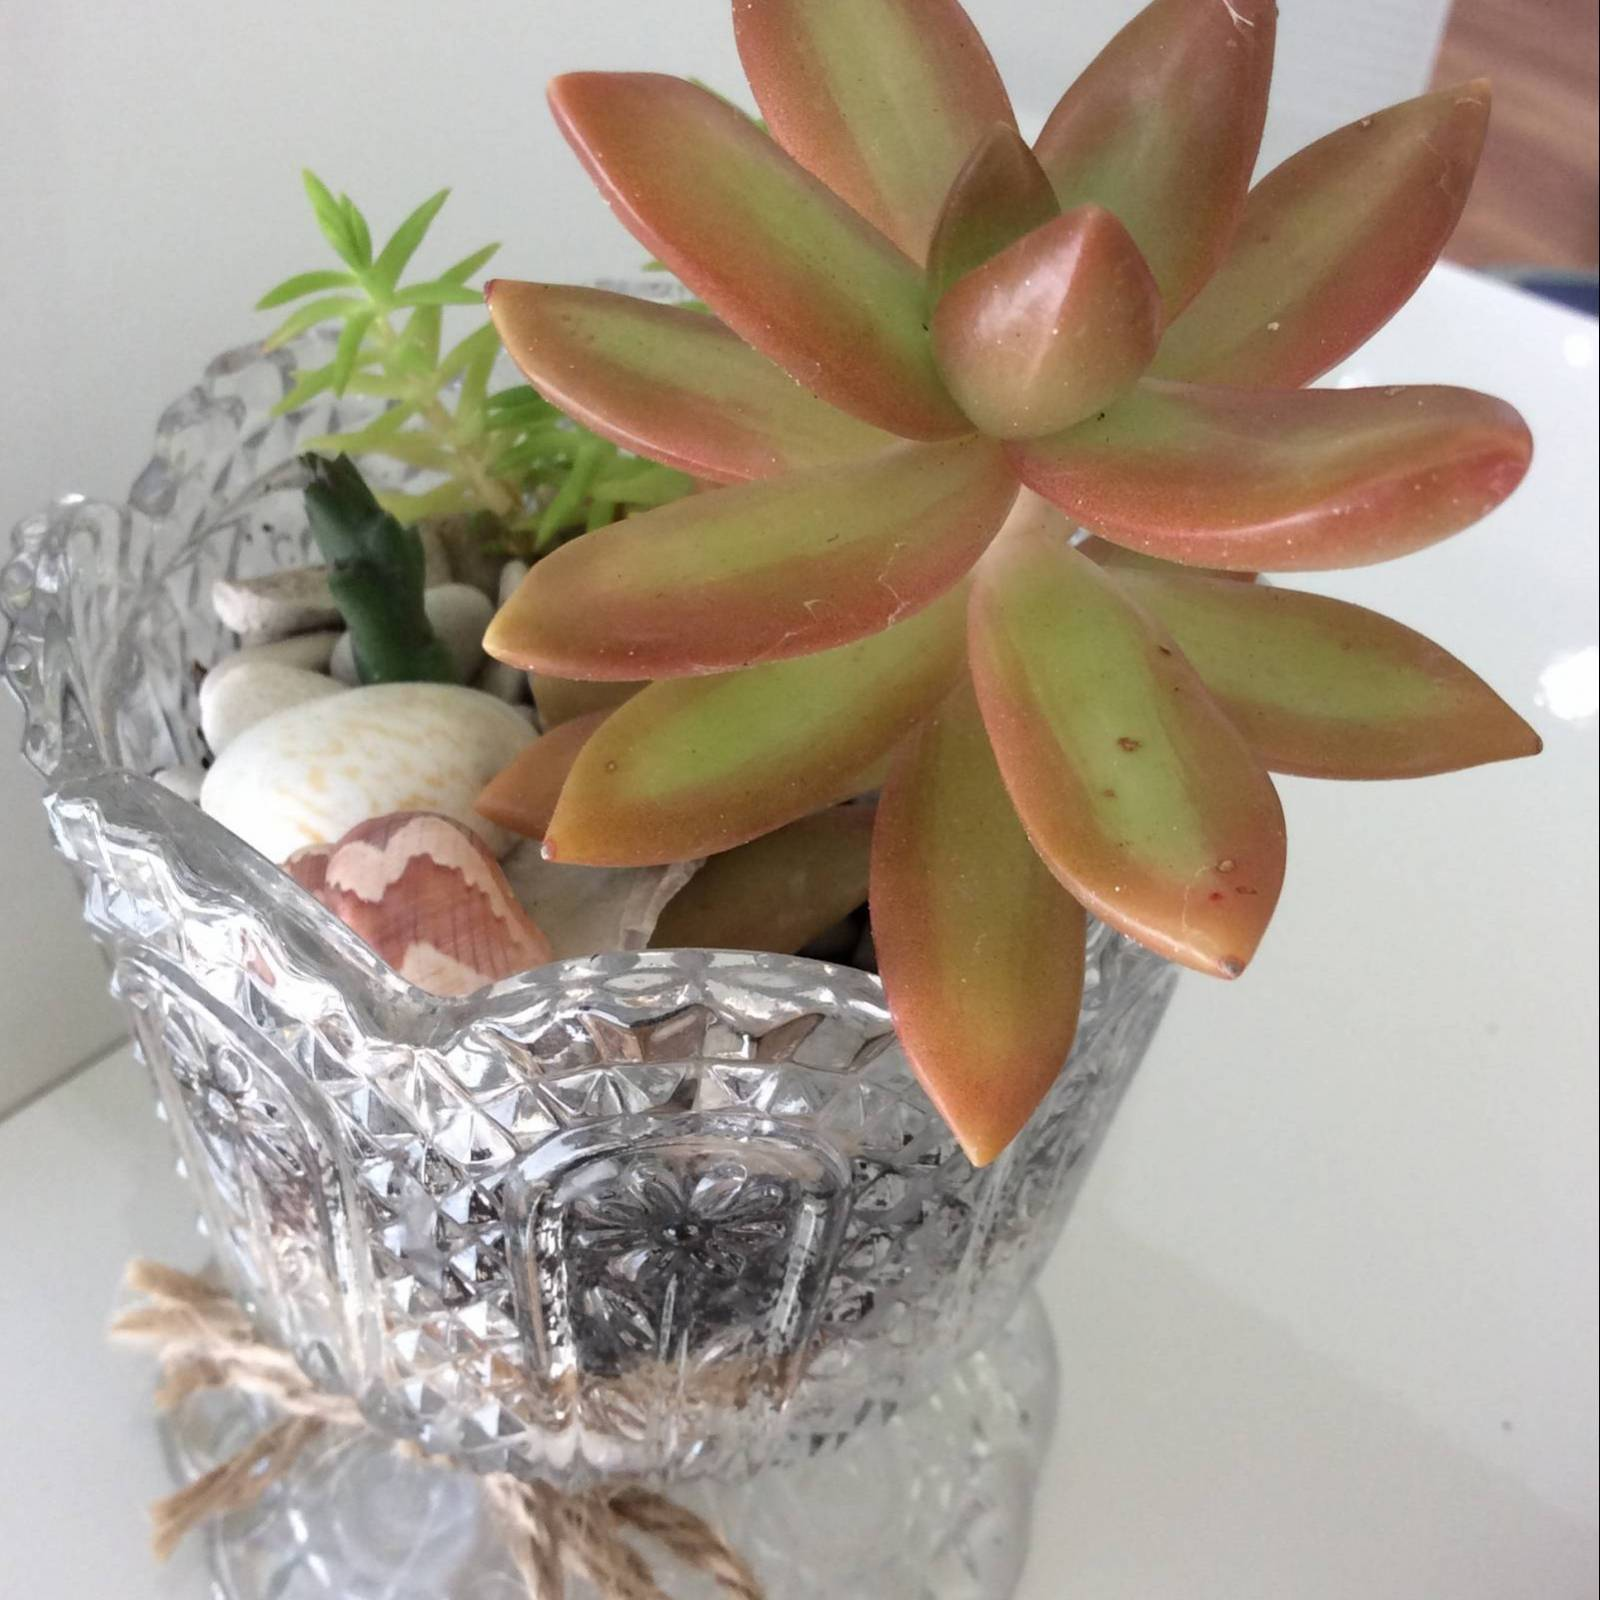 a glass trifle glass with planted succulents indide.